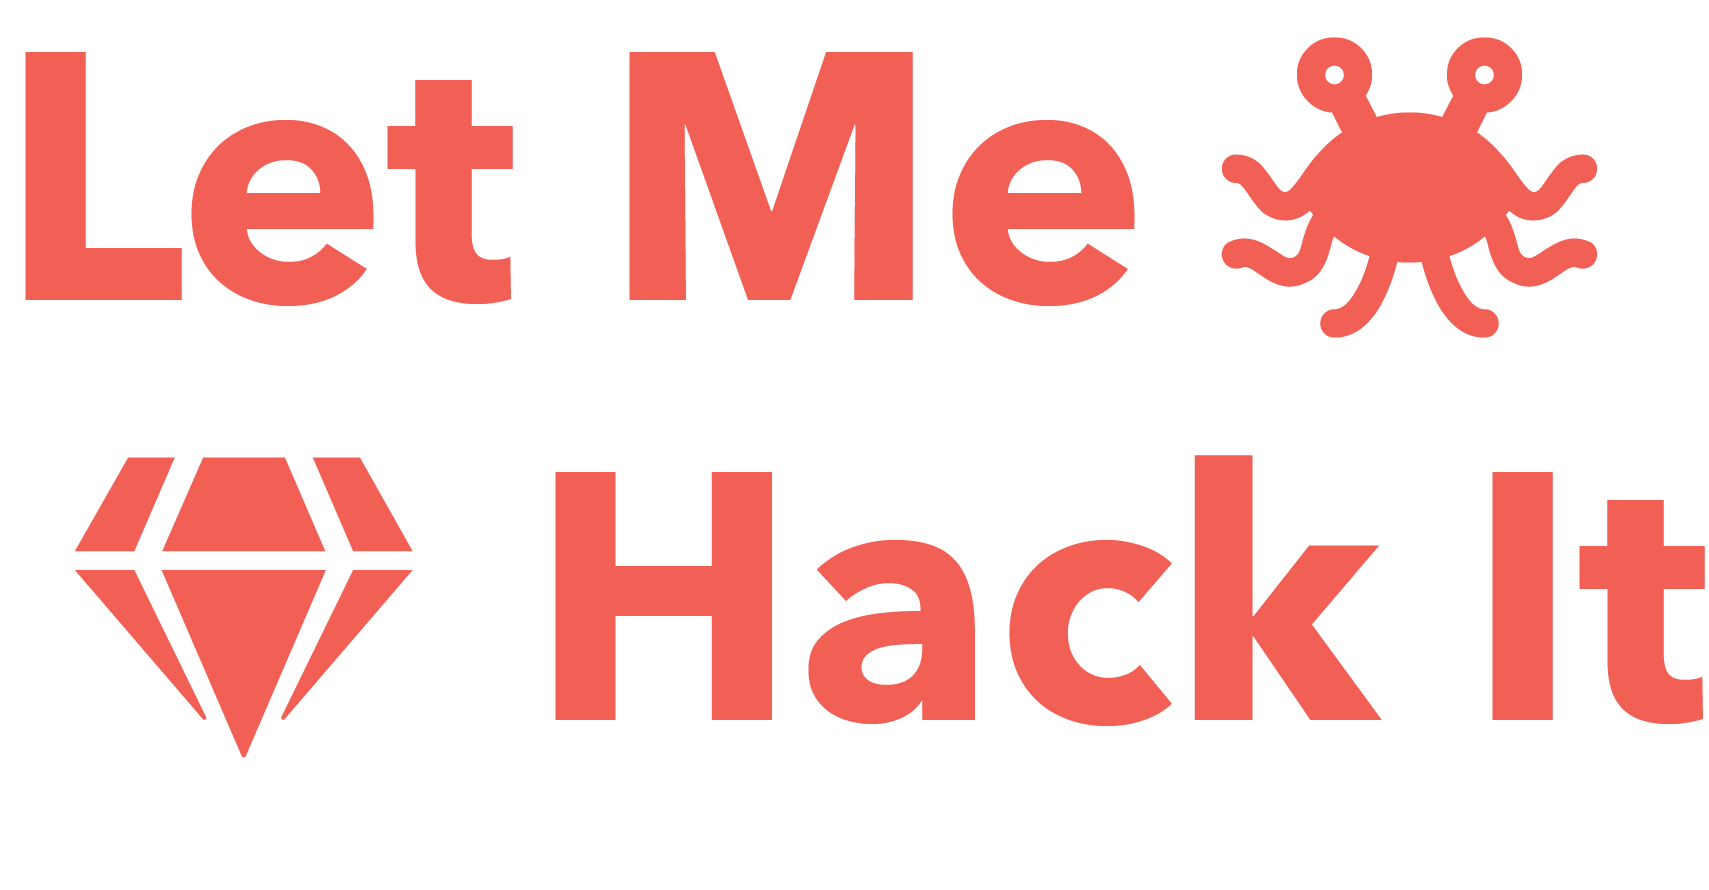 Let Me Hack It logo